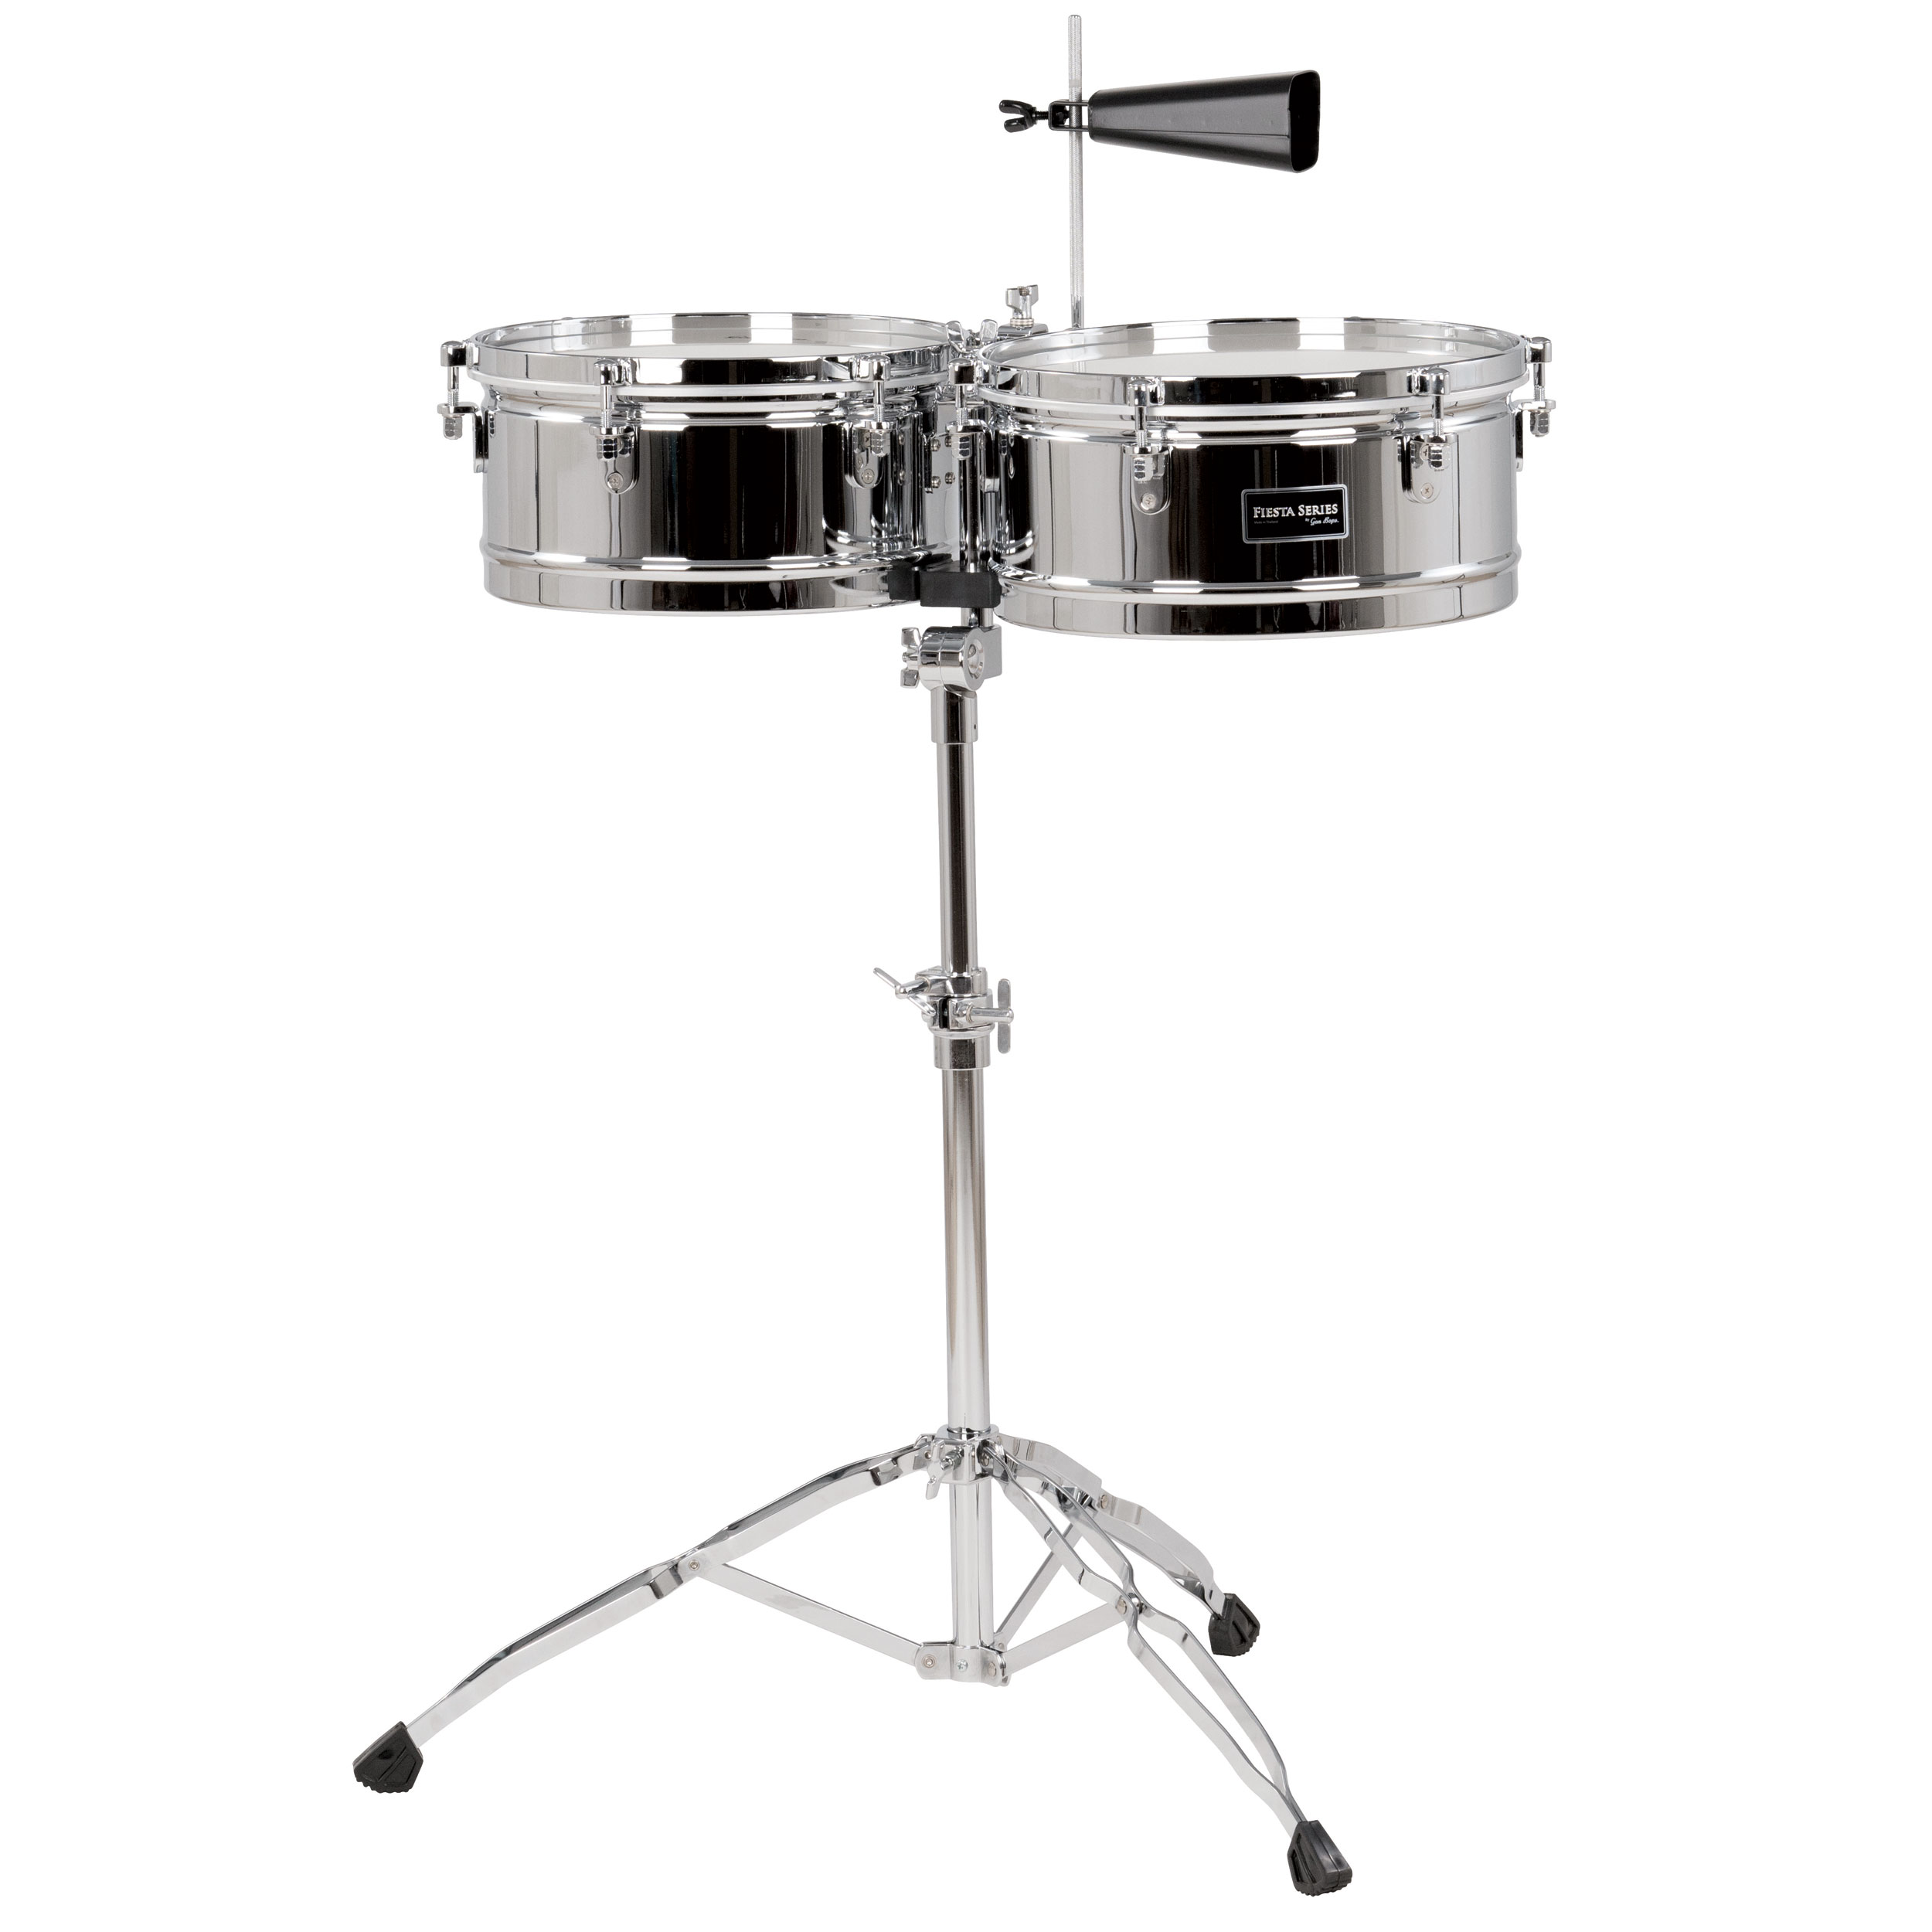 "Gon Bops 13/14"" Fiesta Timbales with Stand"